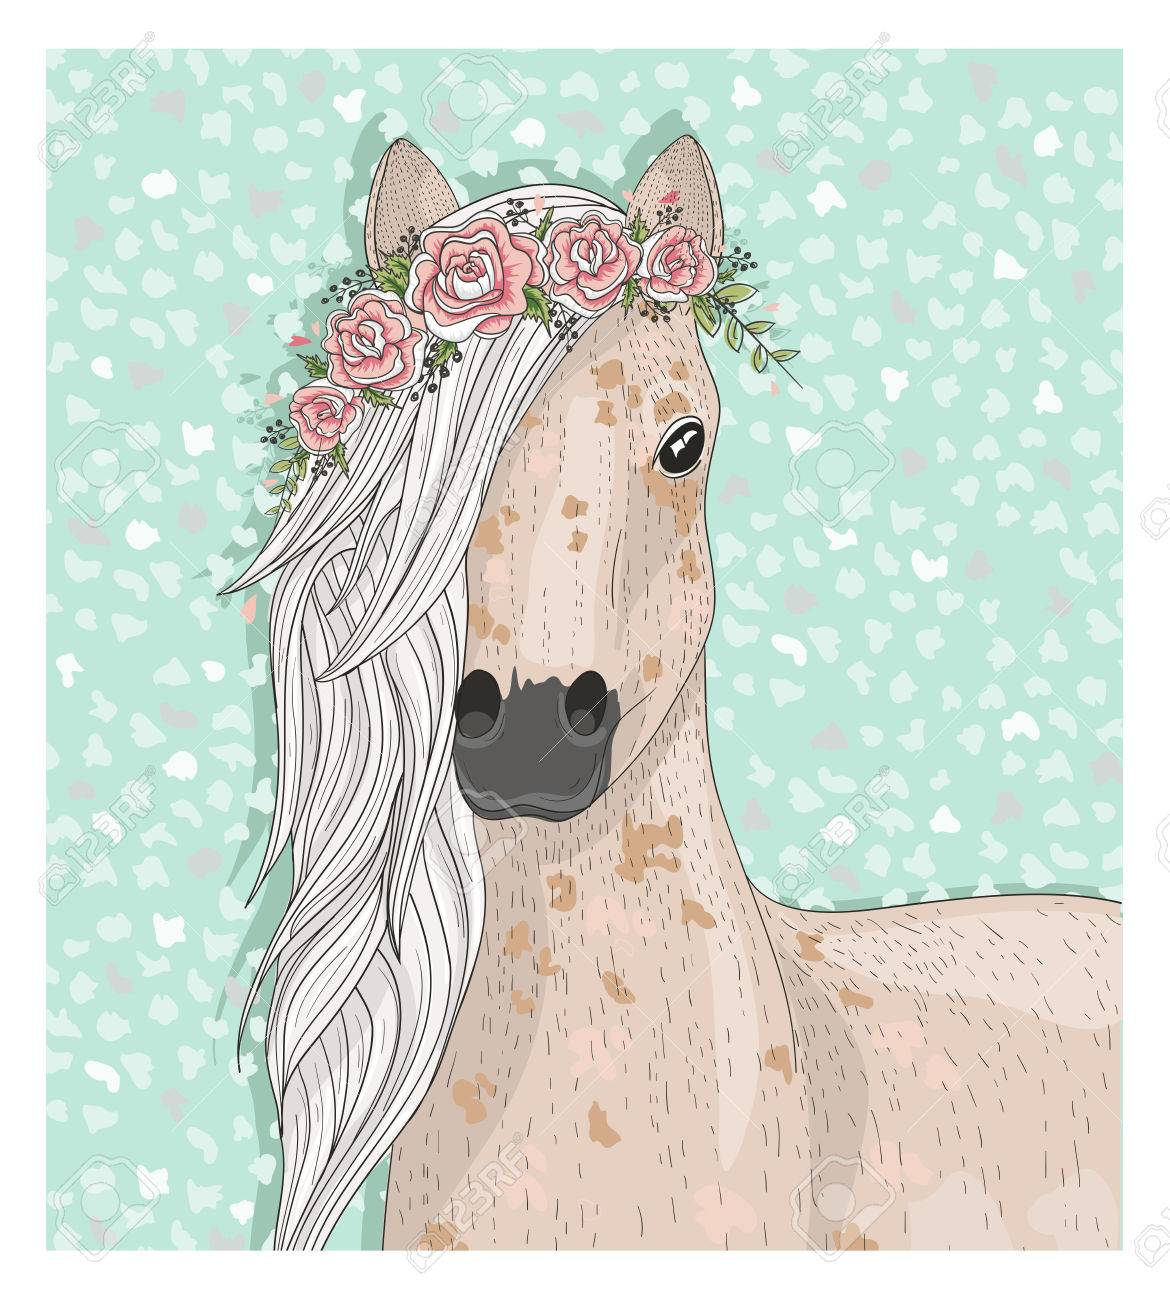 Cute Horse With Flowers Fairytale Background For Kids Or Children Royalty Free Cliparts Vectors And Stock Illustration Image 52754472